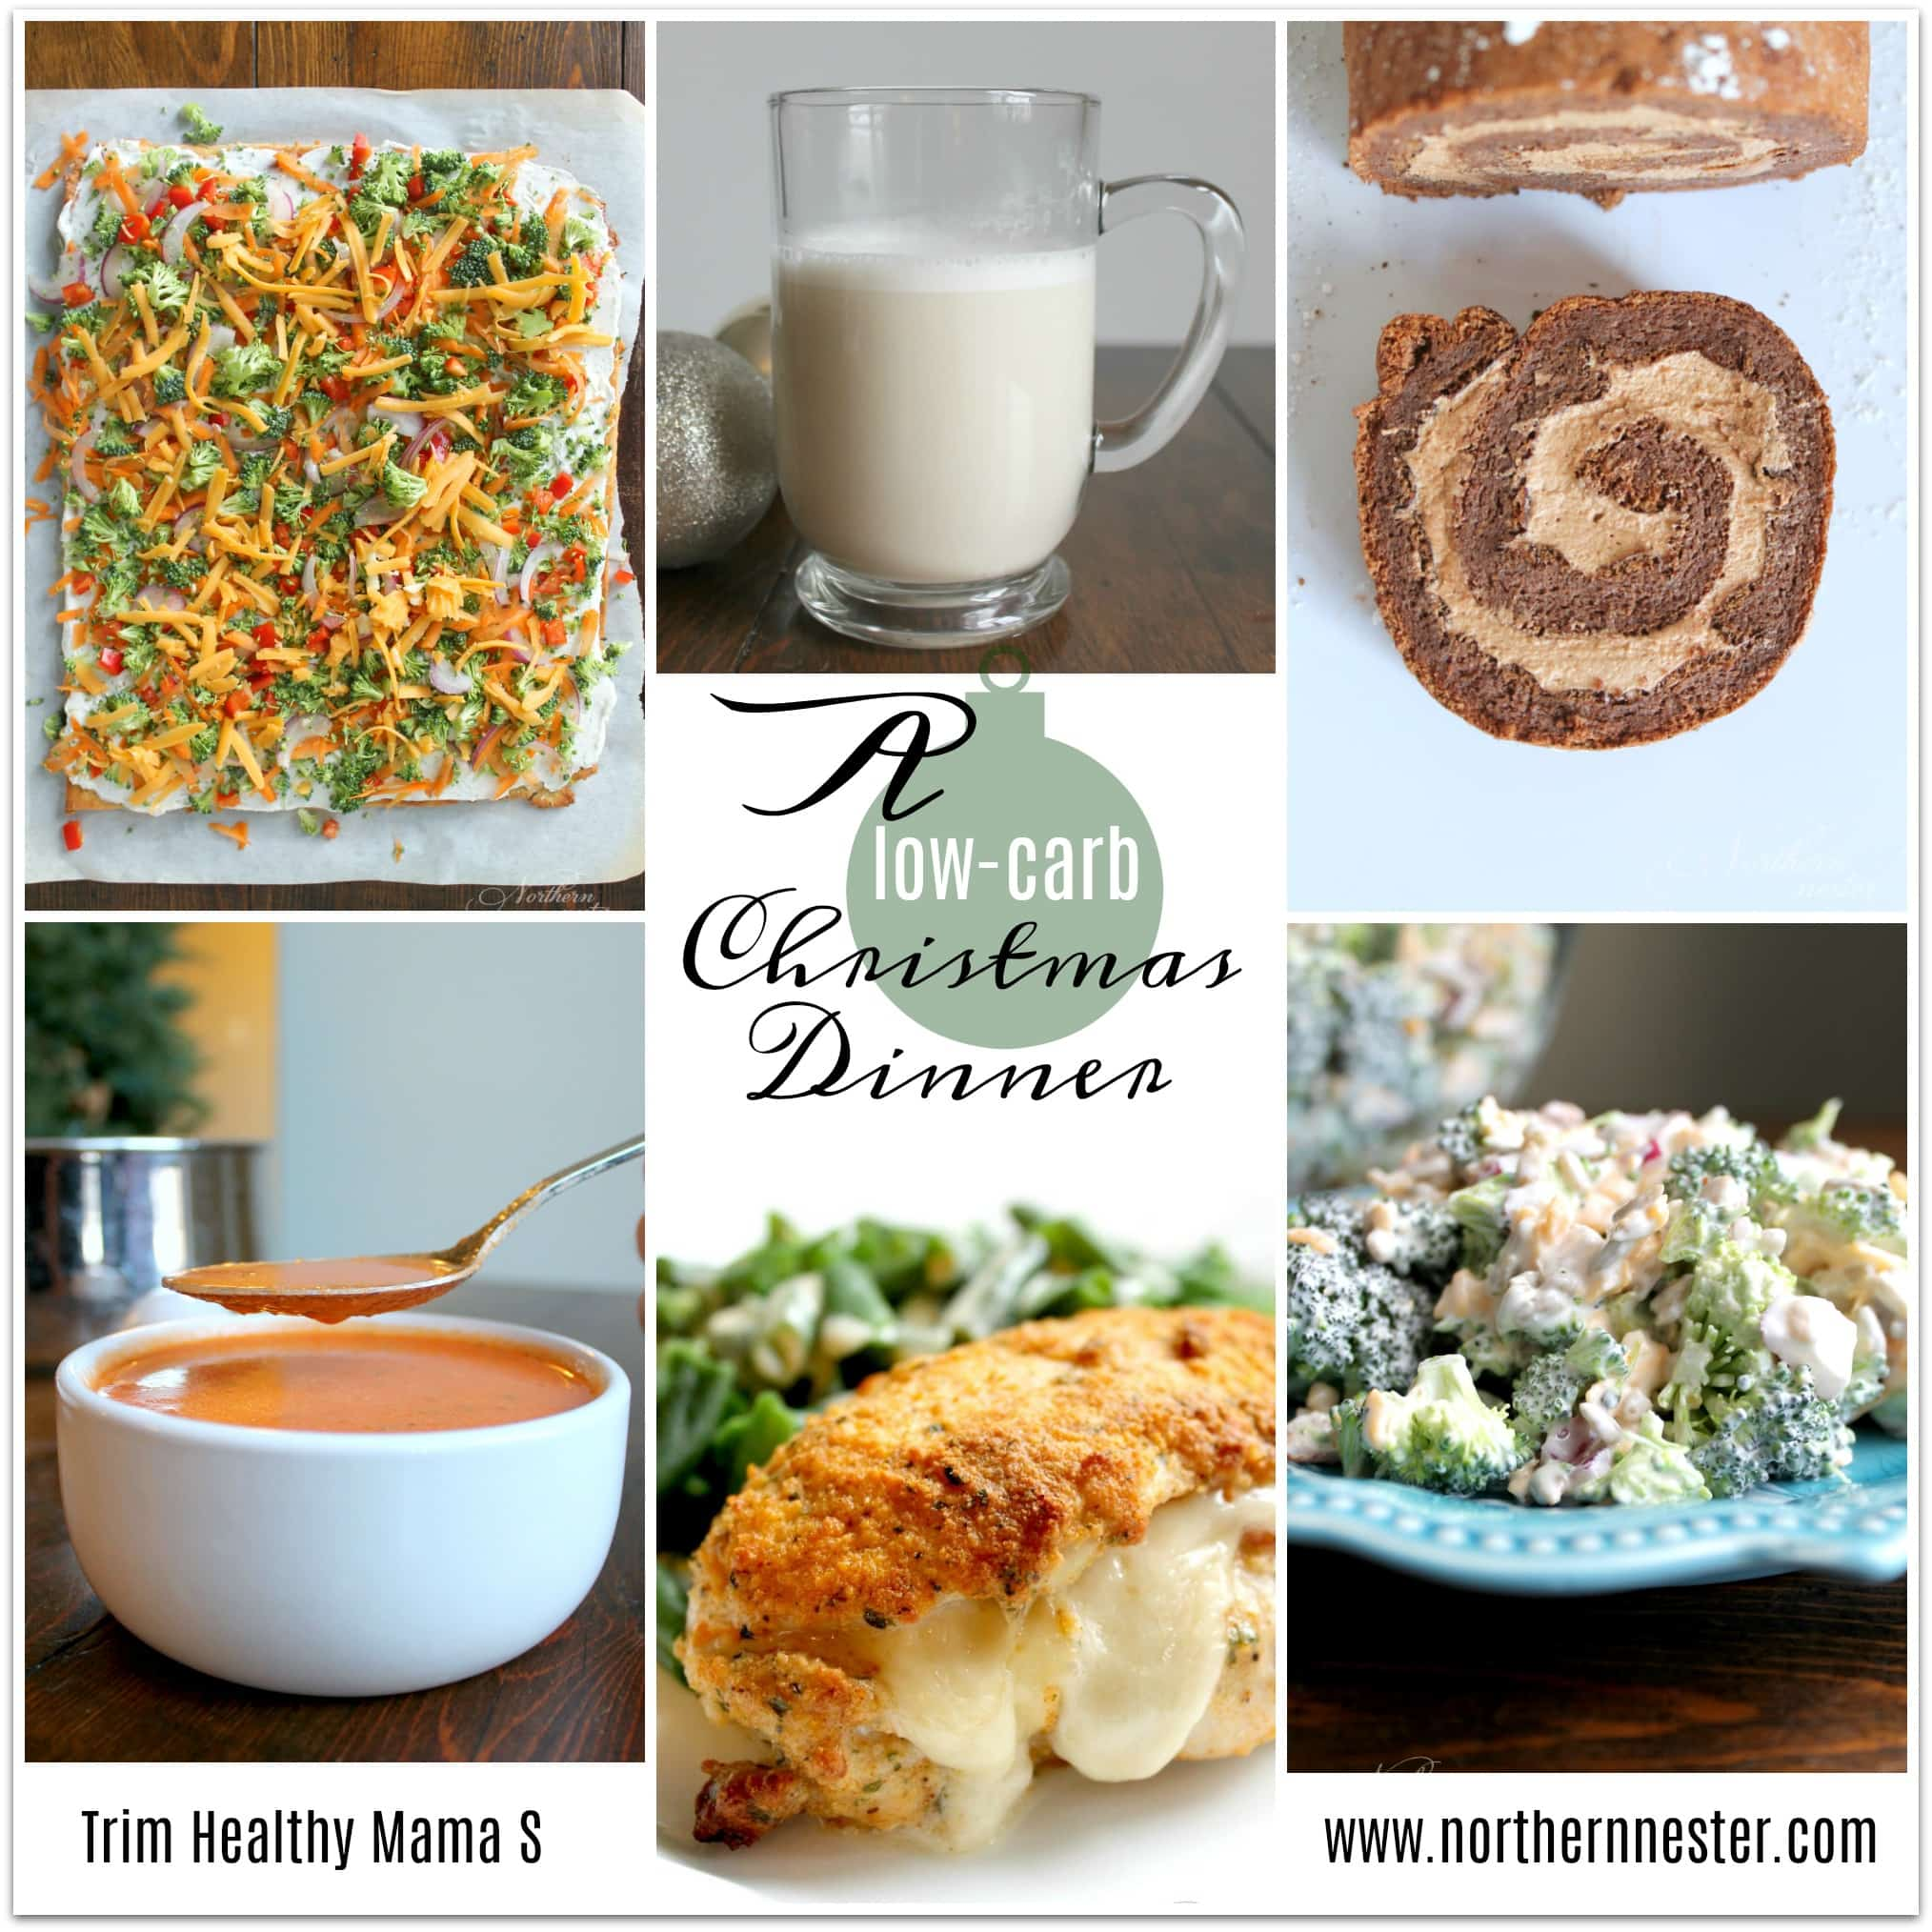 If not, I hope this low-carb, no-special-ingredient Trim Healthy Mama Christmas Dinner using some of our family's all-time favorite S recipes will help make ...